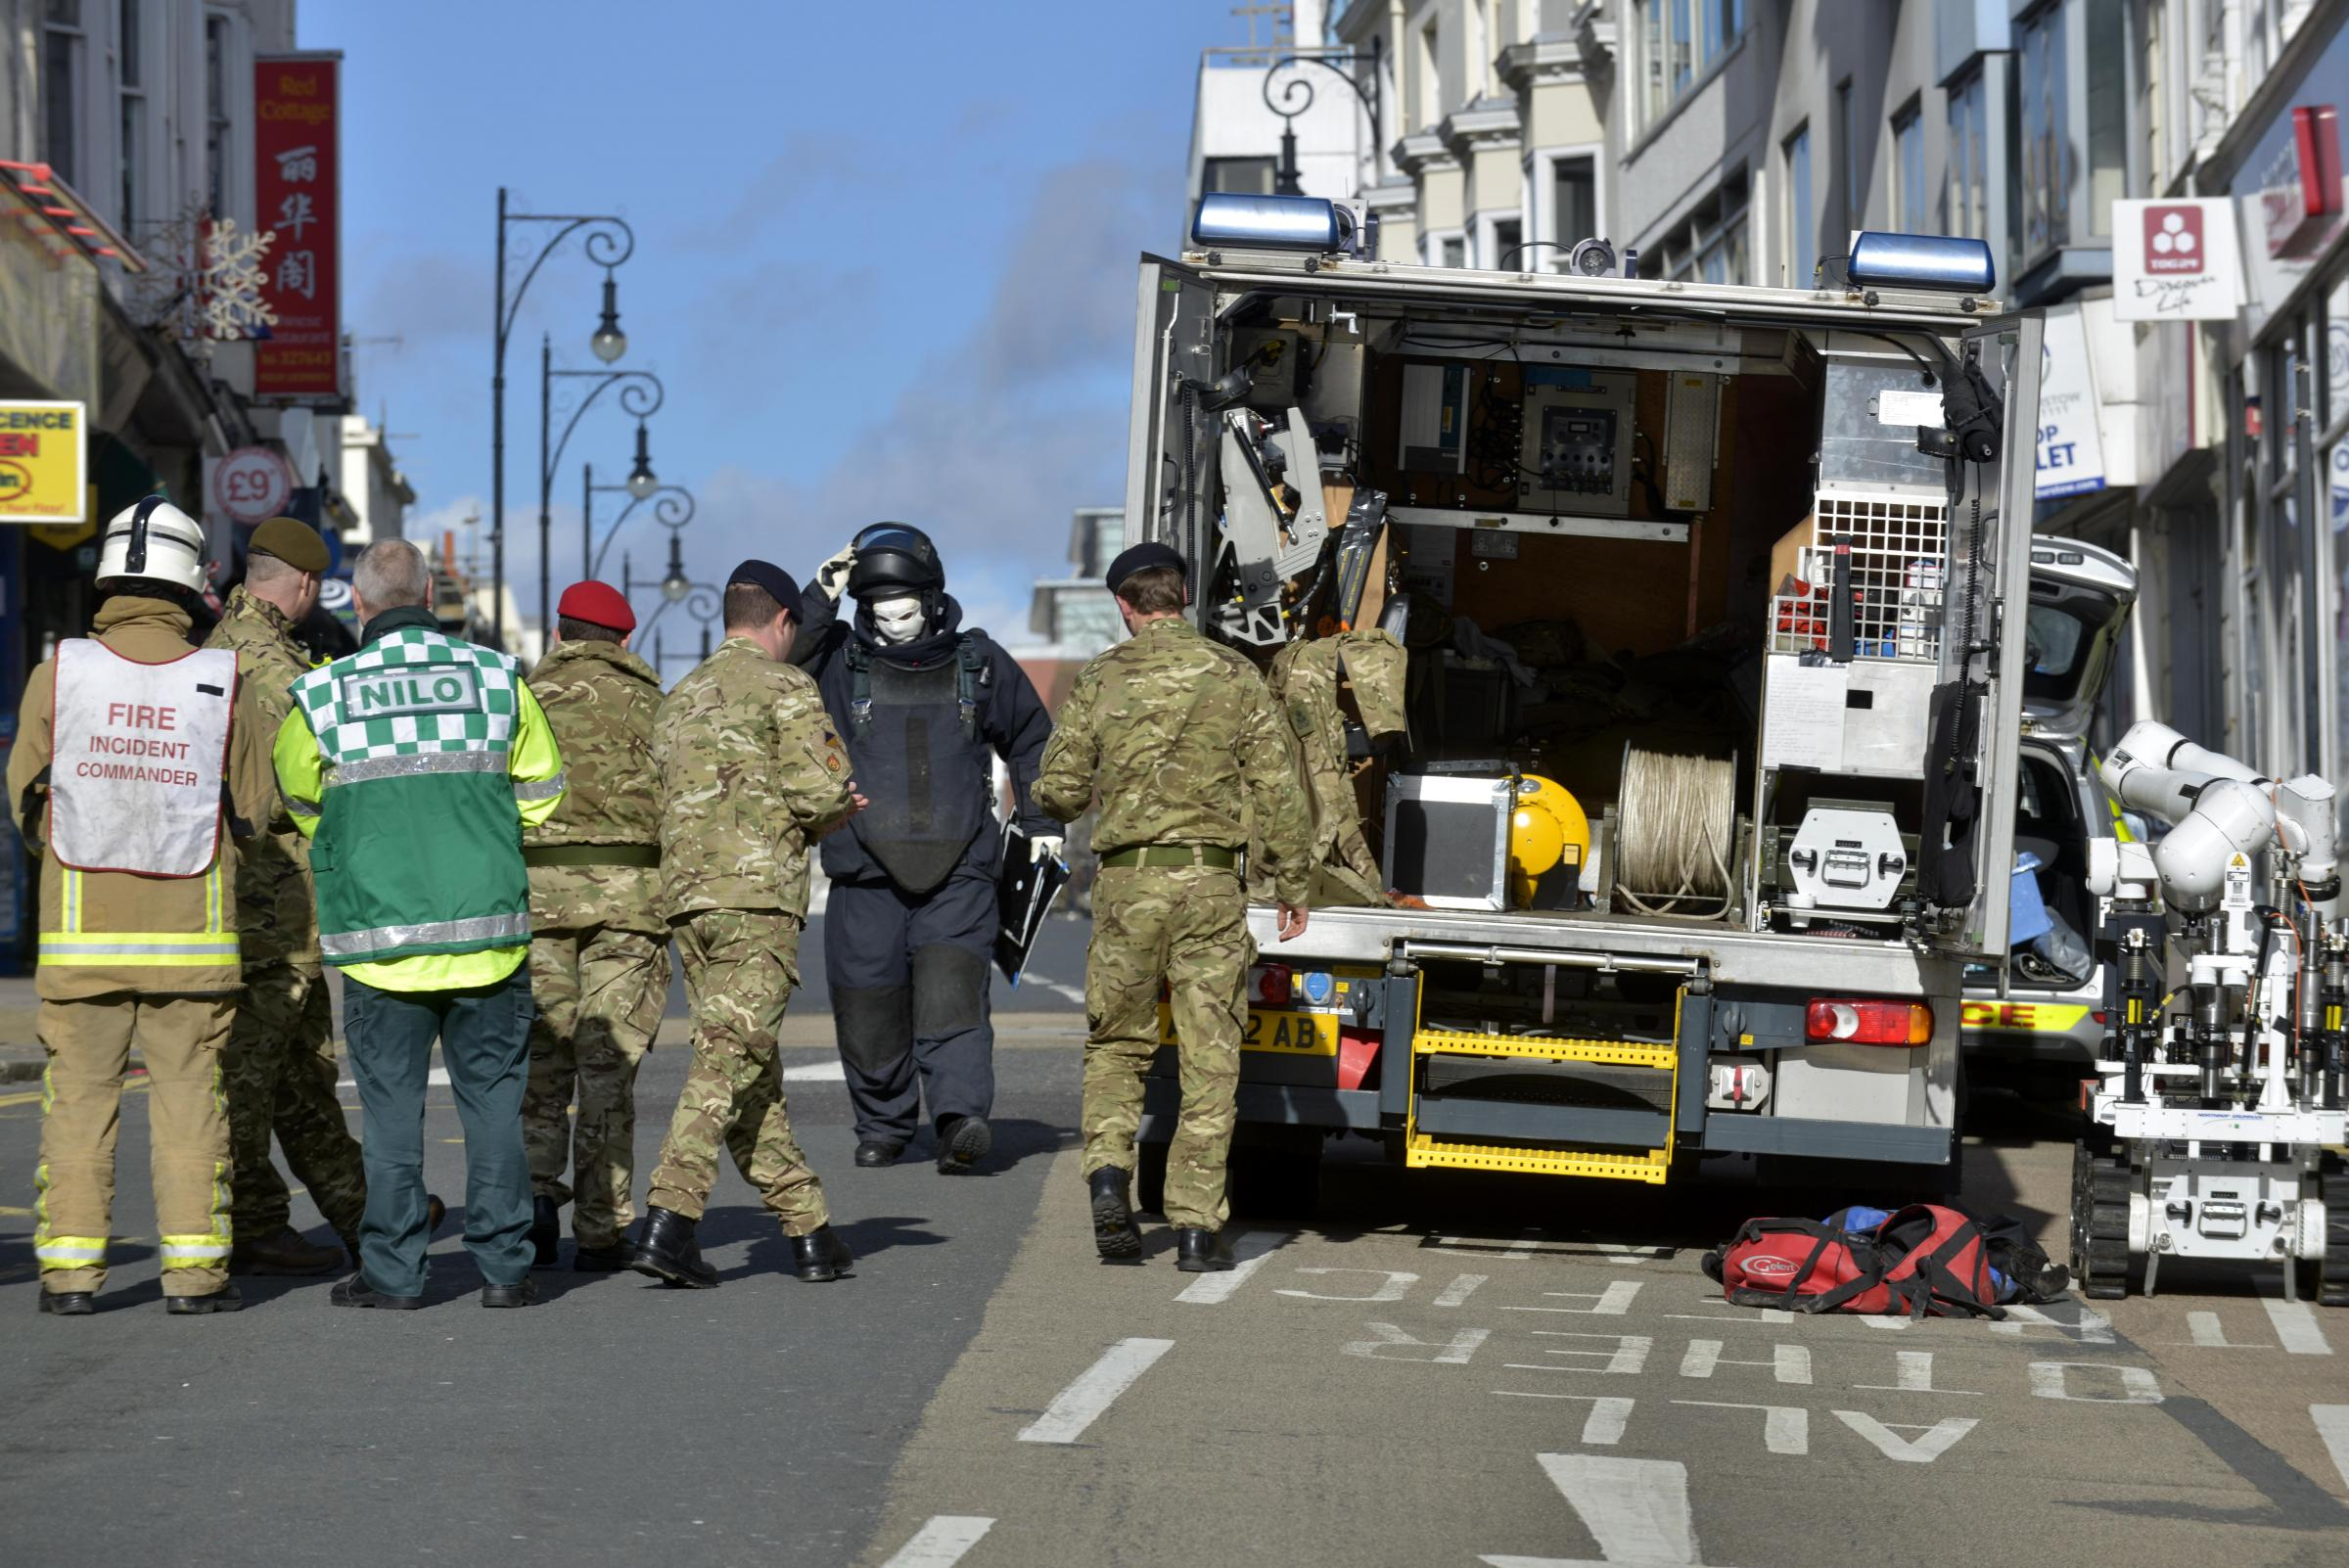 Brighton bomb scare captured on video